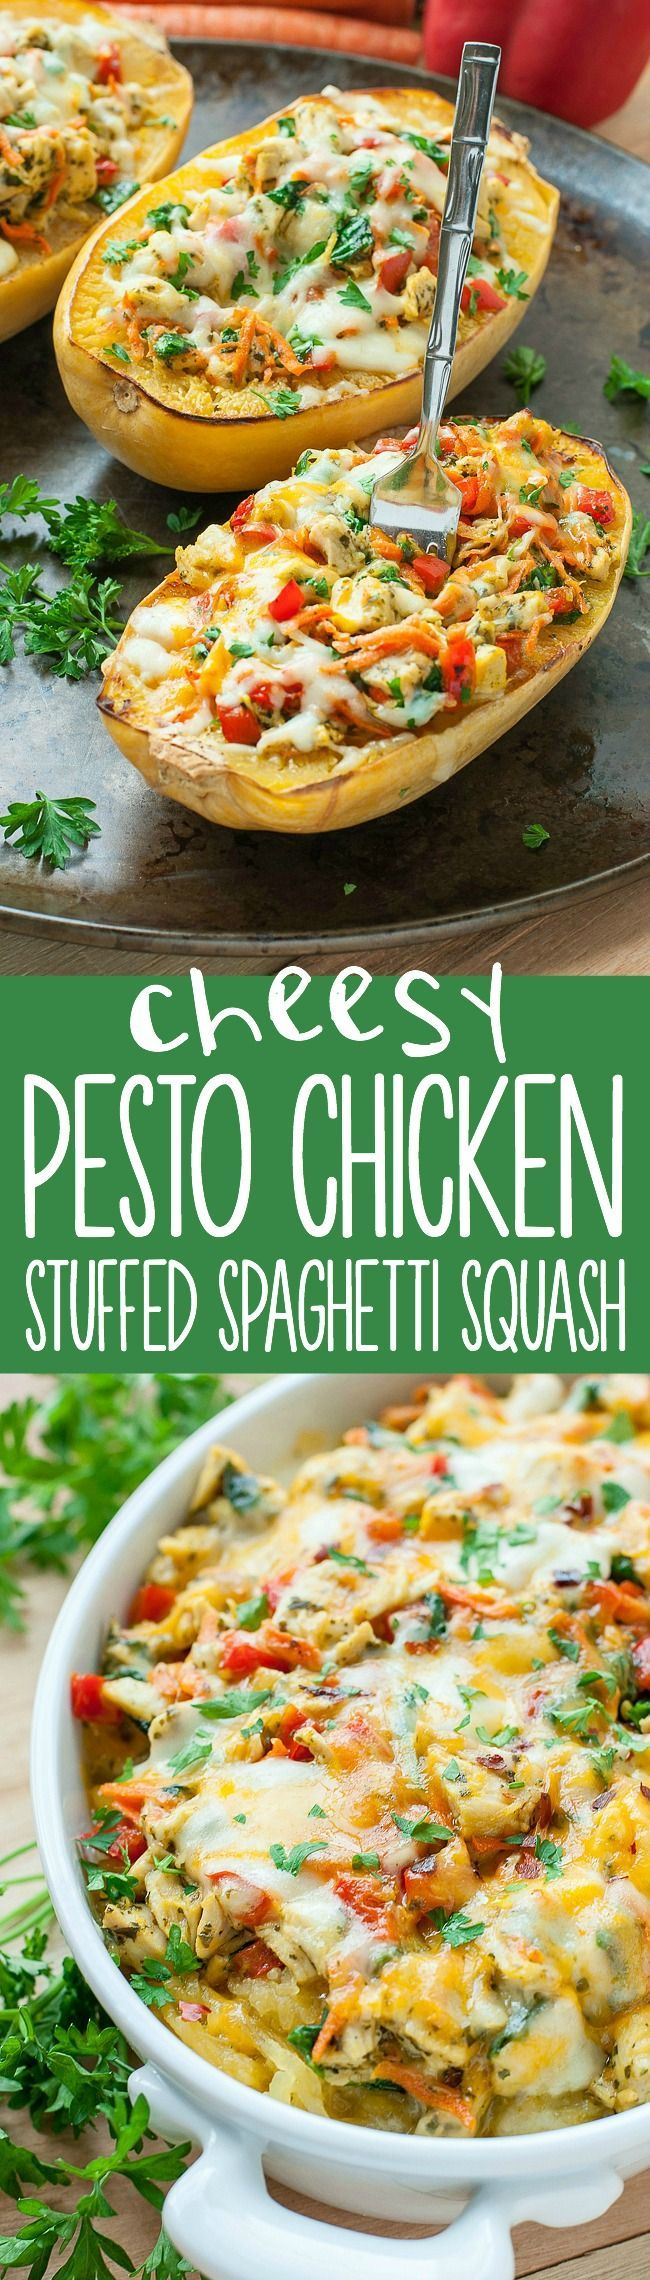 Cheesy Pesto Chicken and Veggie Stuffed Spaghetti Squash by Pea and Crayons